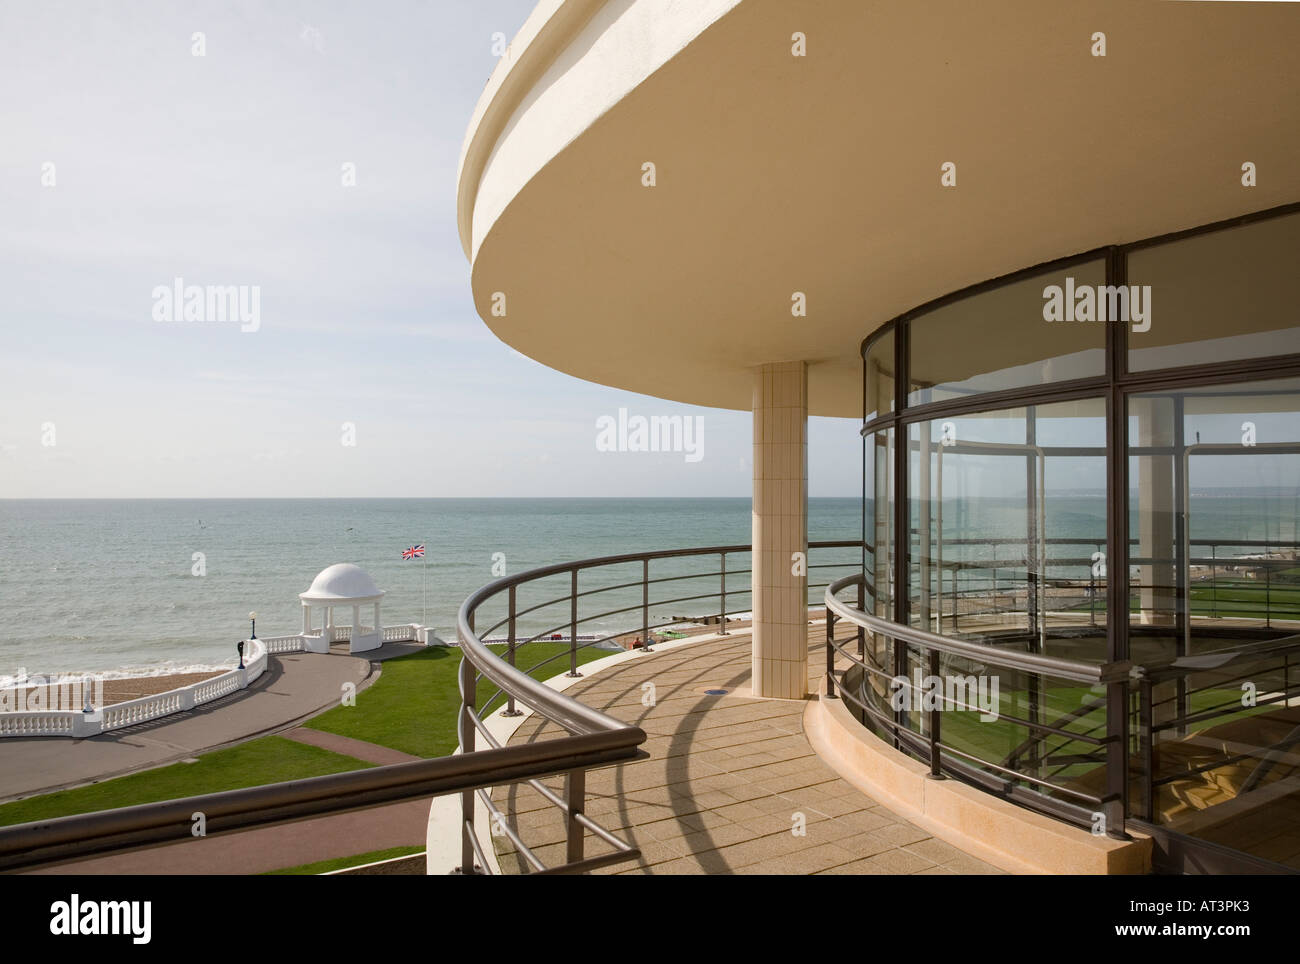 Exterior view from roof showing curved glazing and sea beyond - Stock Image